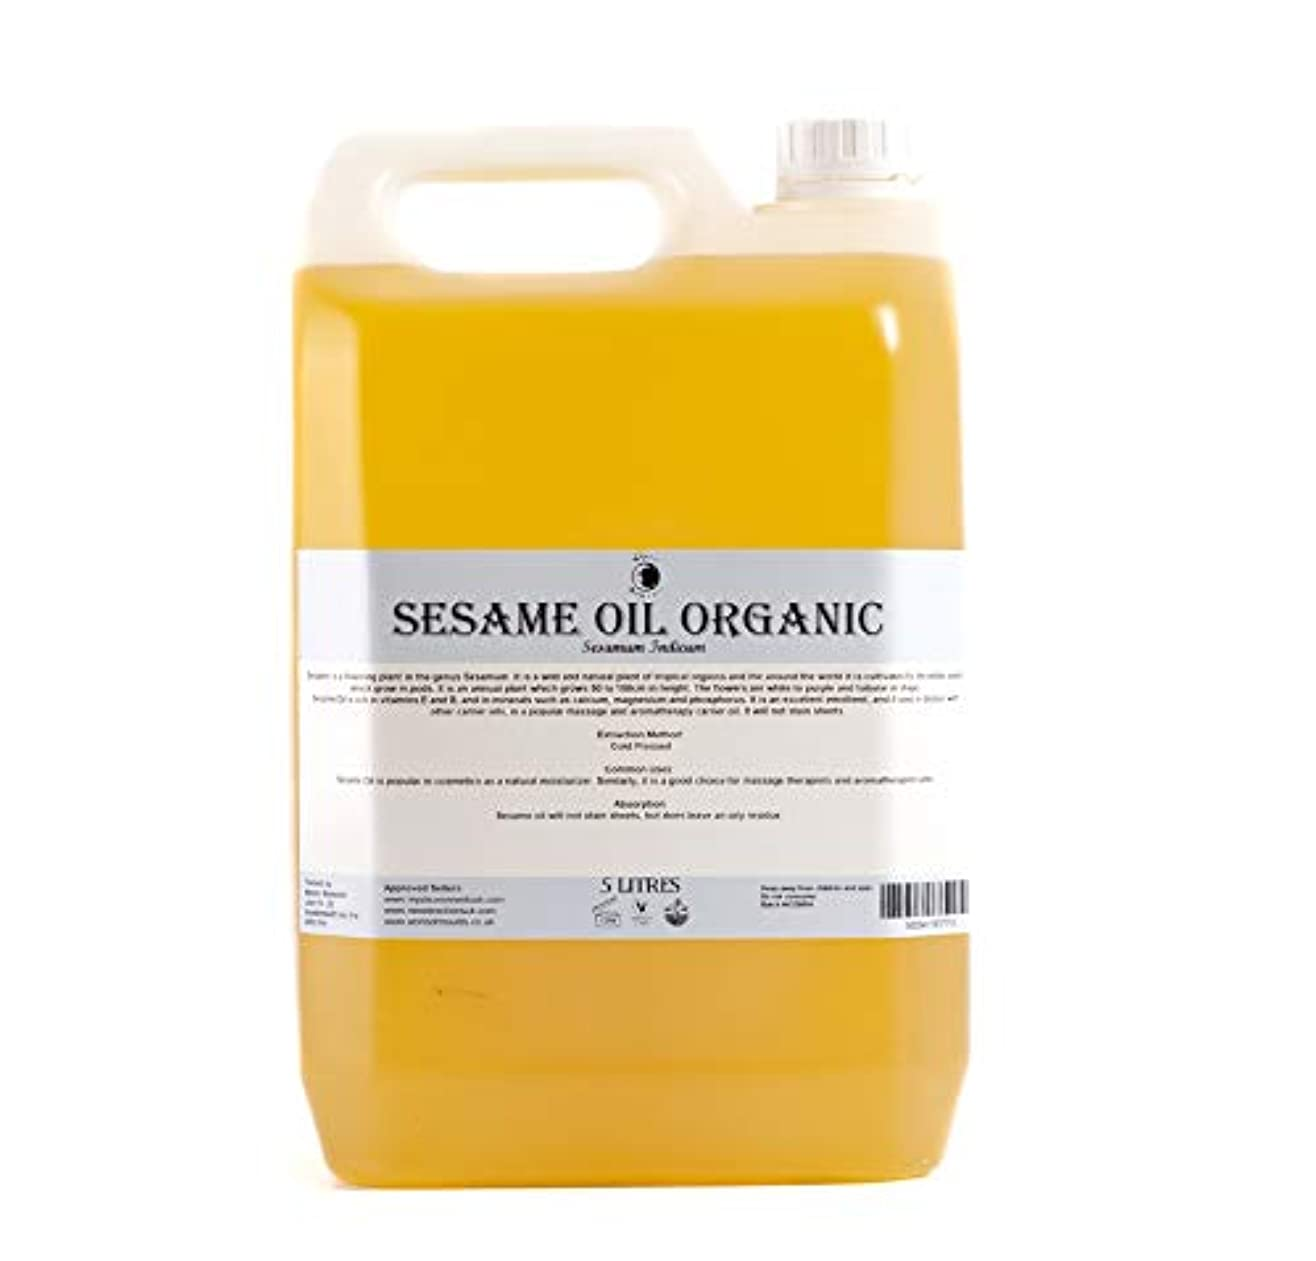 クランプ寛容天才Mystic Moments | Sesame Organic Carrier Oil - 5 Litres - 100% Pure